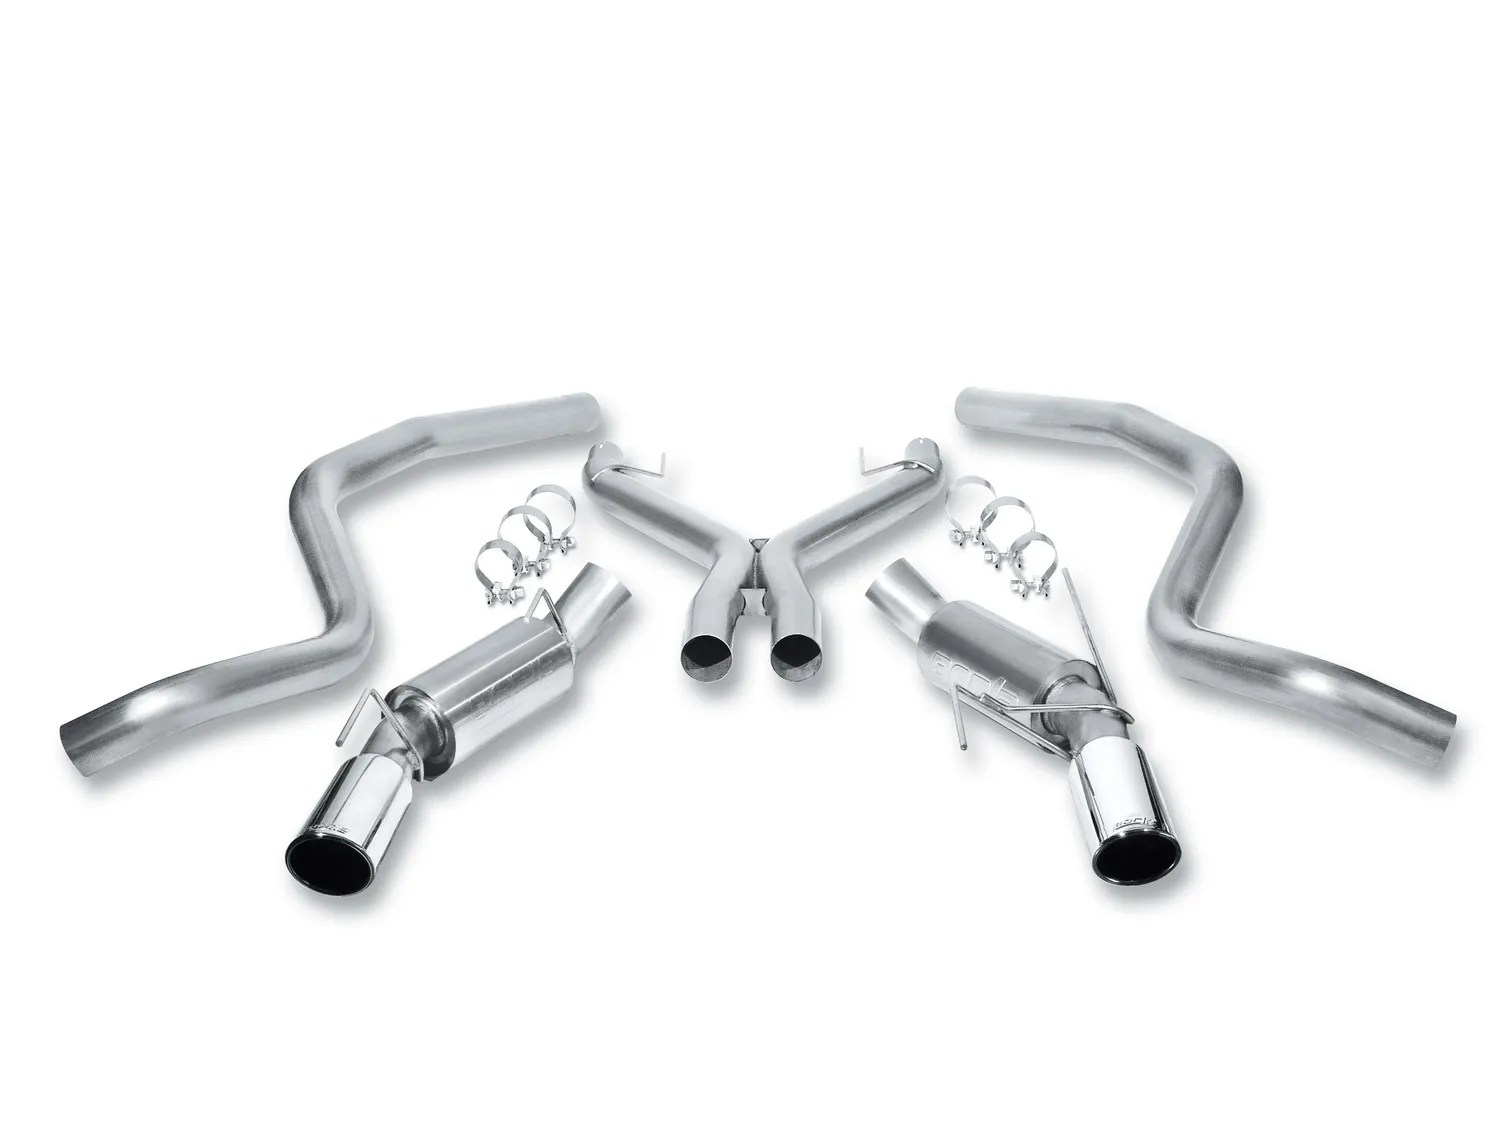 Borla Touring Cat Back Exhaust System For Ford